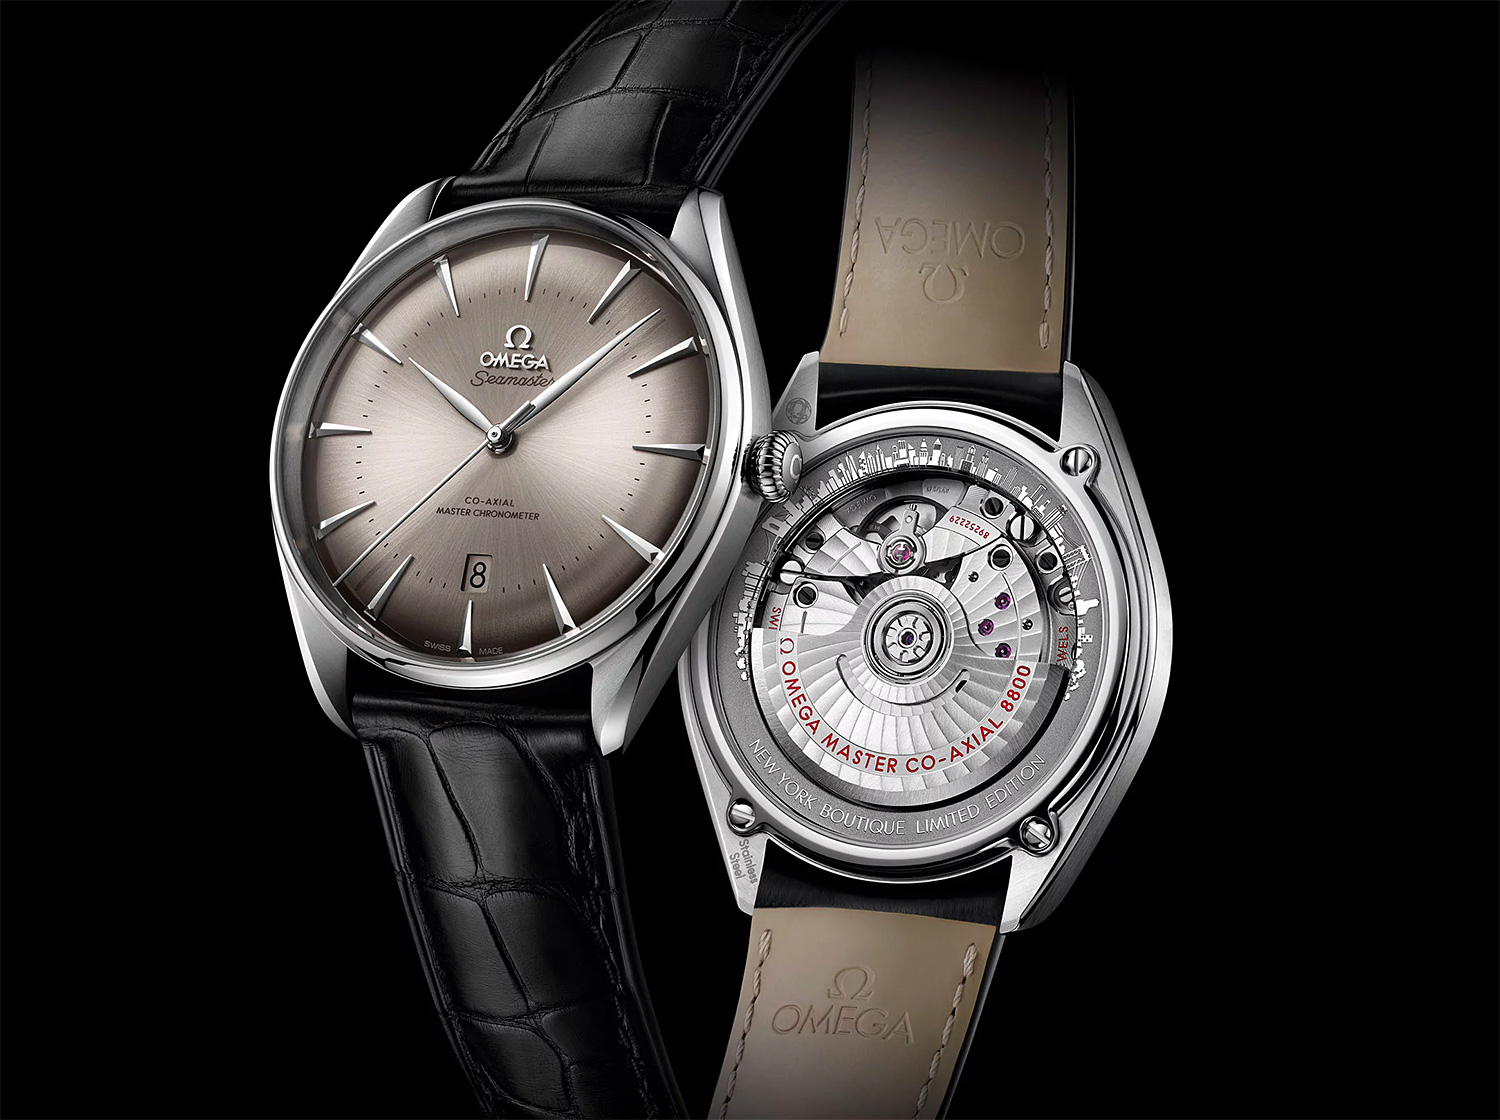 Omega Celebrates New York in its Latest Addition to the City Series at werd.com